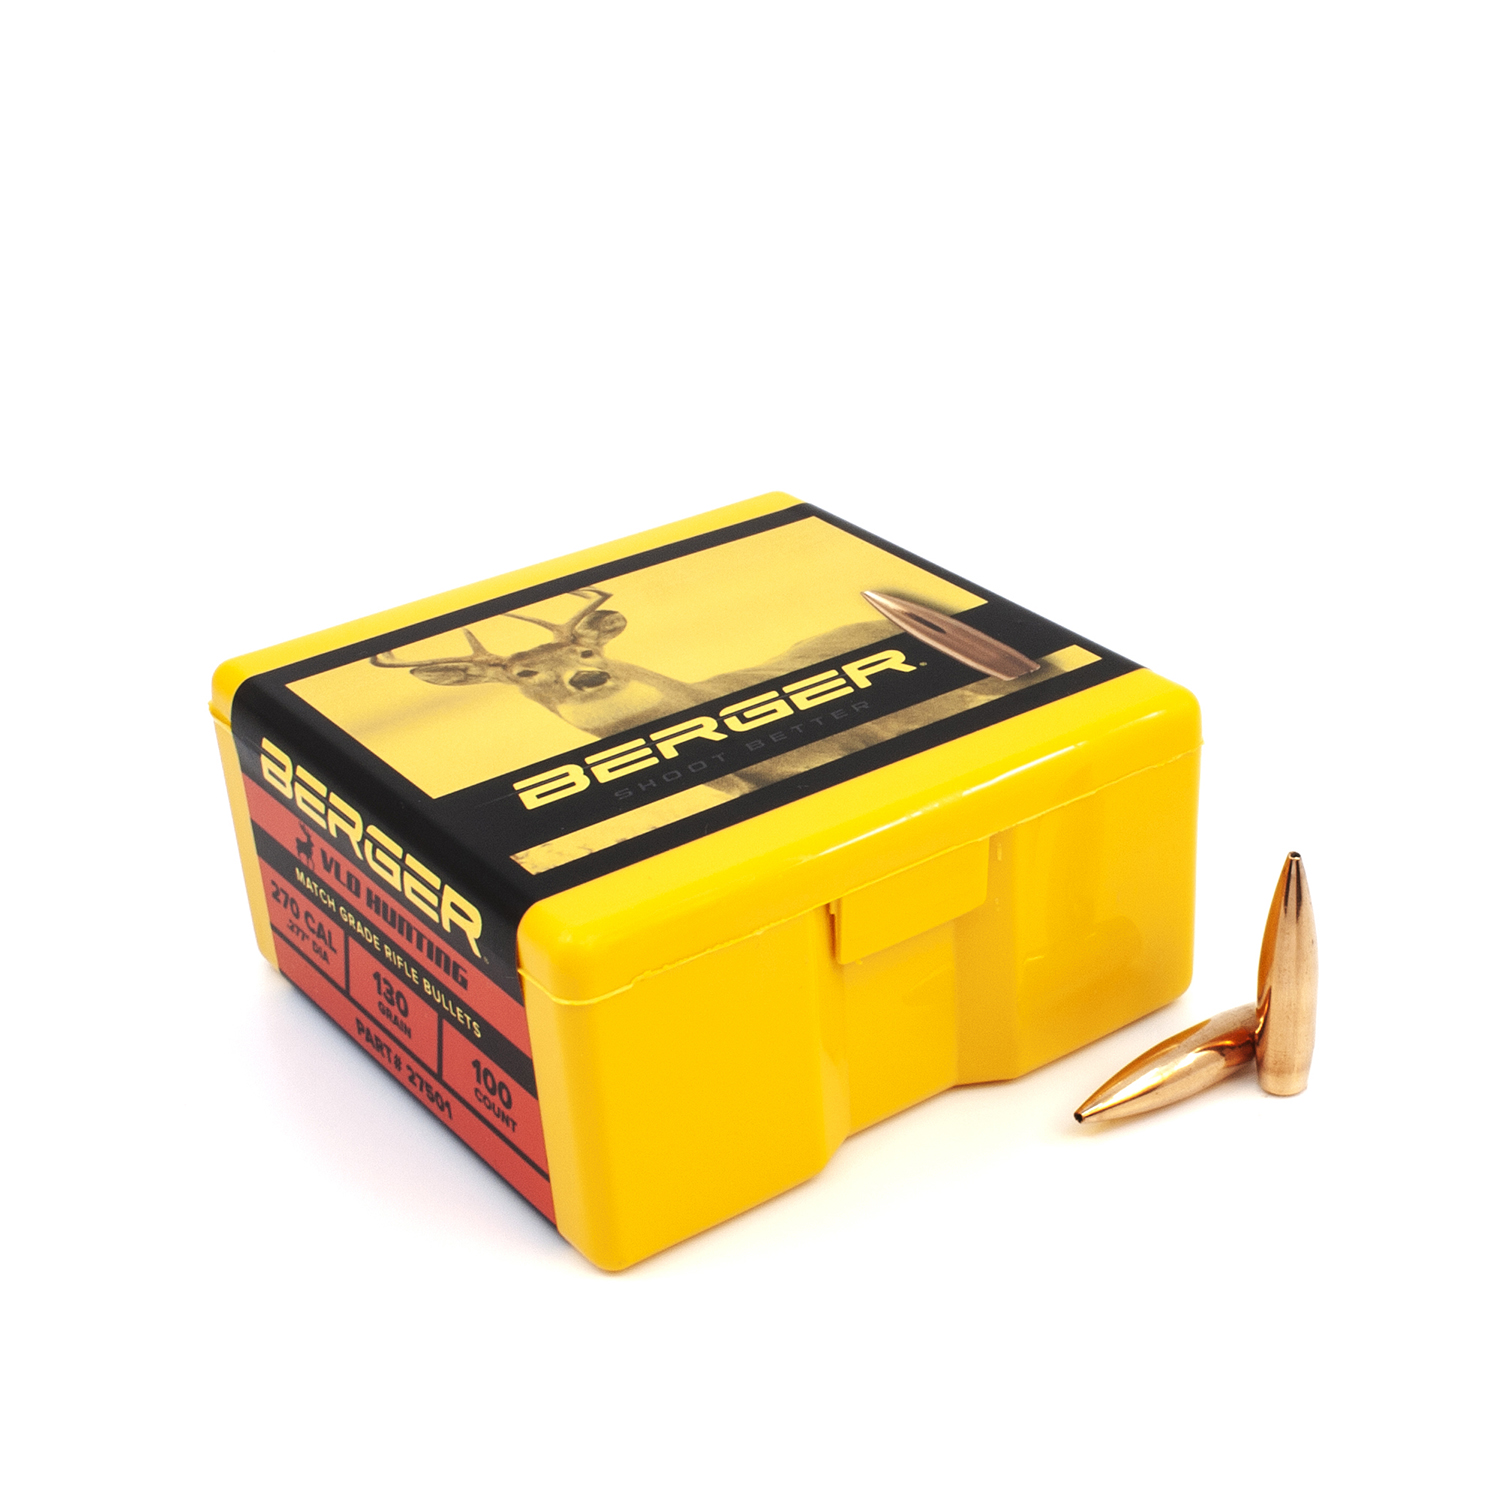 Berger Bullets - .270 cal, 130 gr. VLD Hunting - Box of 100